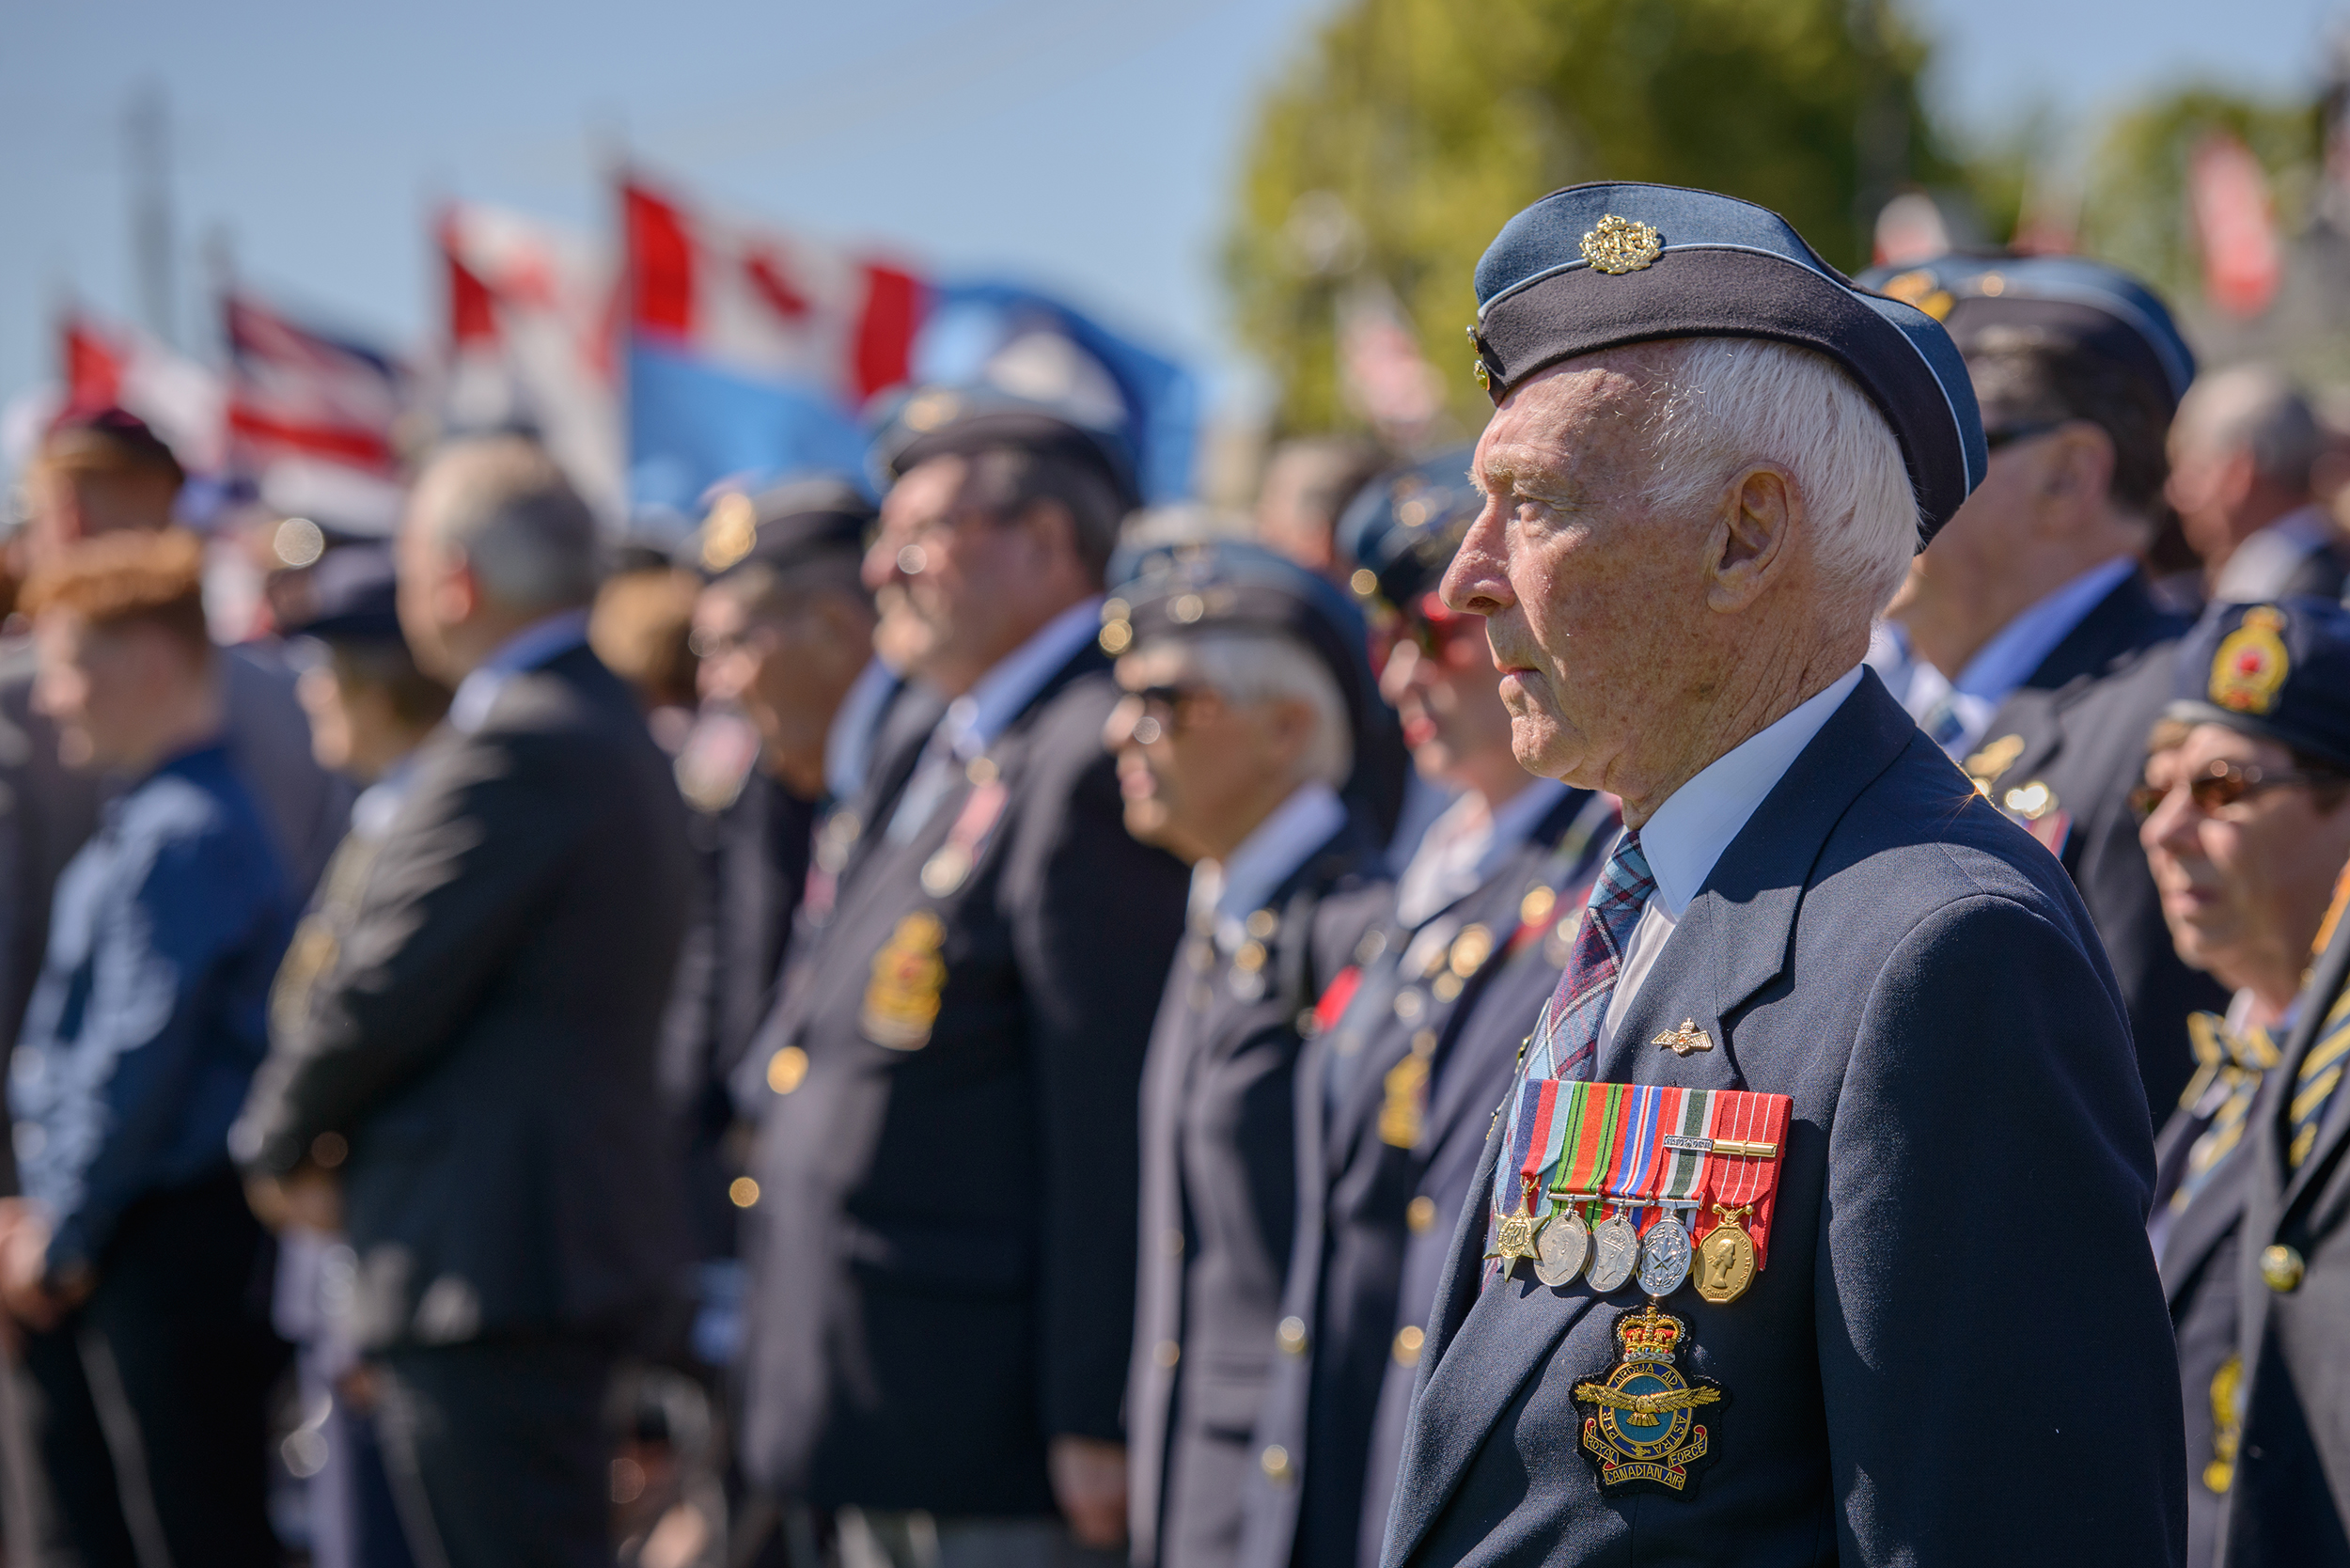 Royal Canadian Air Force veterans stand during the national ceremony held at Parliament Hill on September 20, 2015, to mark the 75th anniversary of the Battle of Britain. In the foreground is Squadron Leader (retired) Desmond Peters who was the commander of the veterans' contingent. PHOTO: Master Corporal Daniel Merrell, SU03-2015-0736-104